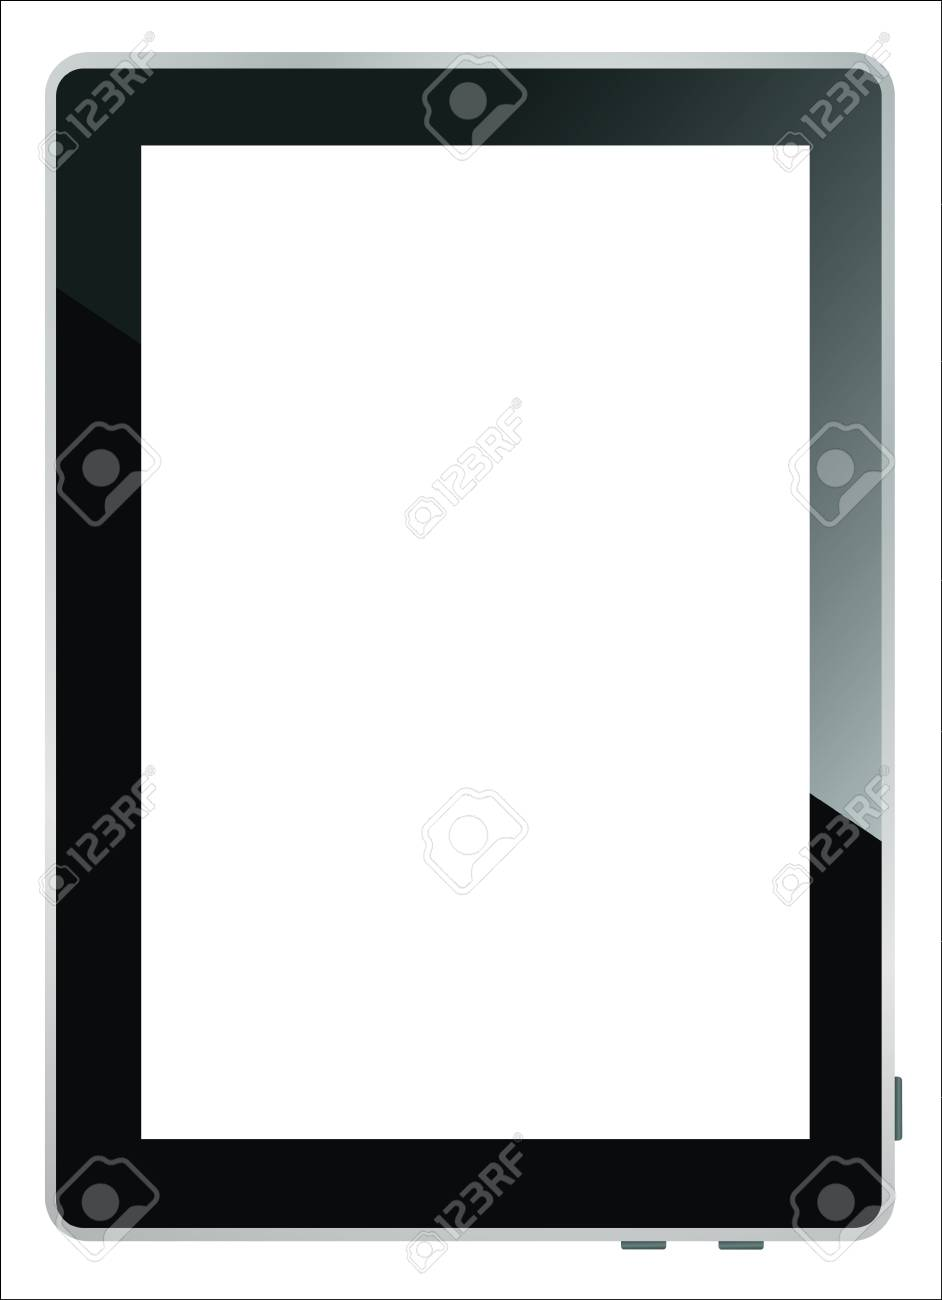 Realistic tablet pc computer with blank screen isolated on white background Stock Vector - 17754025